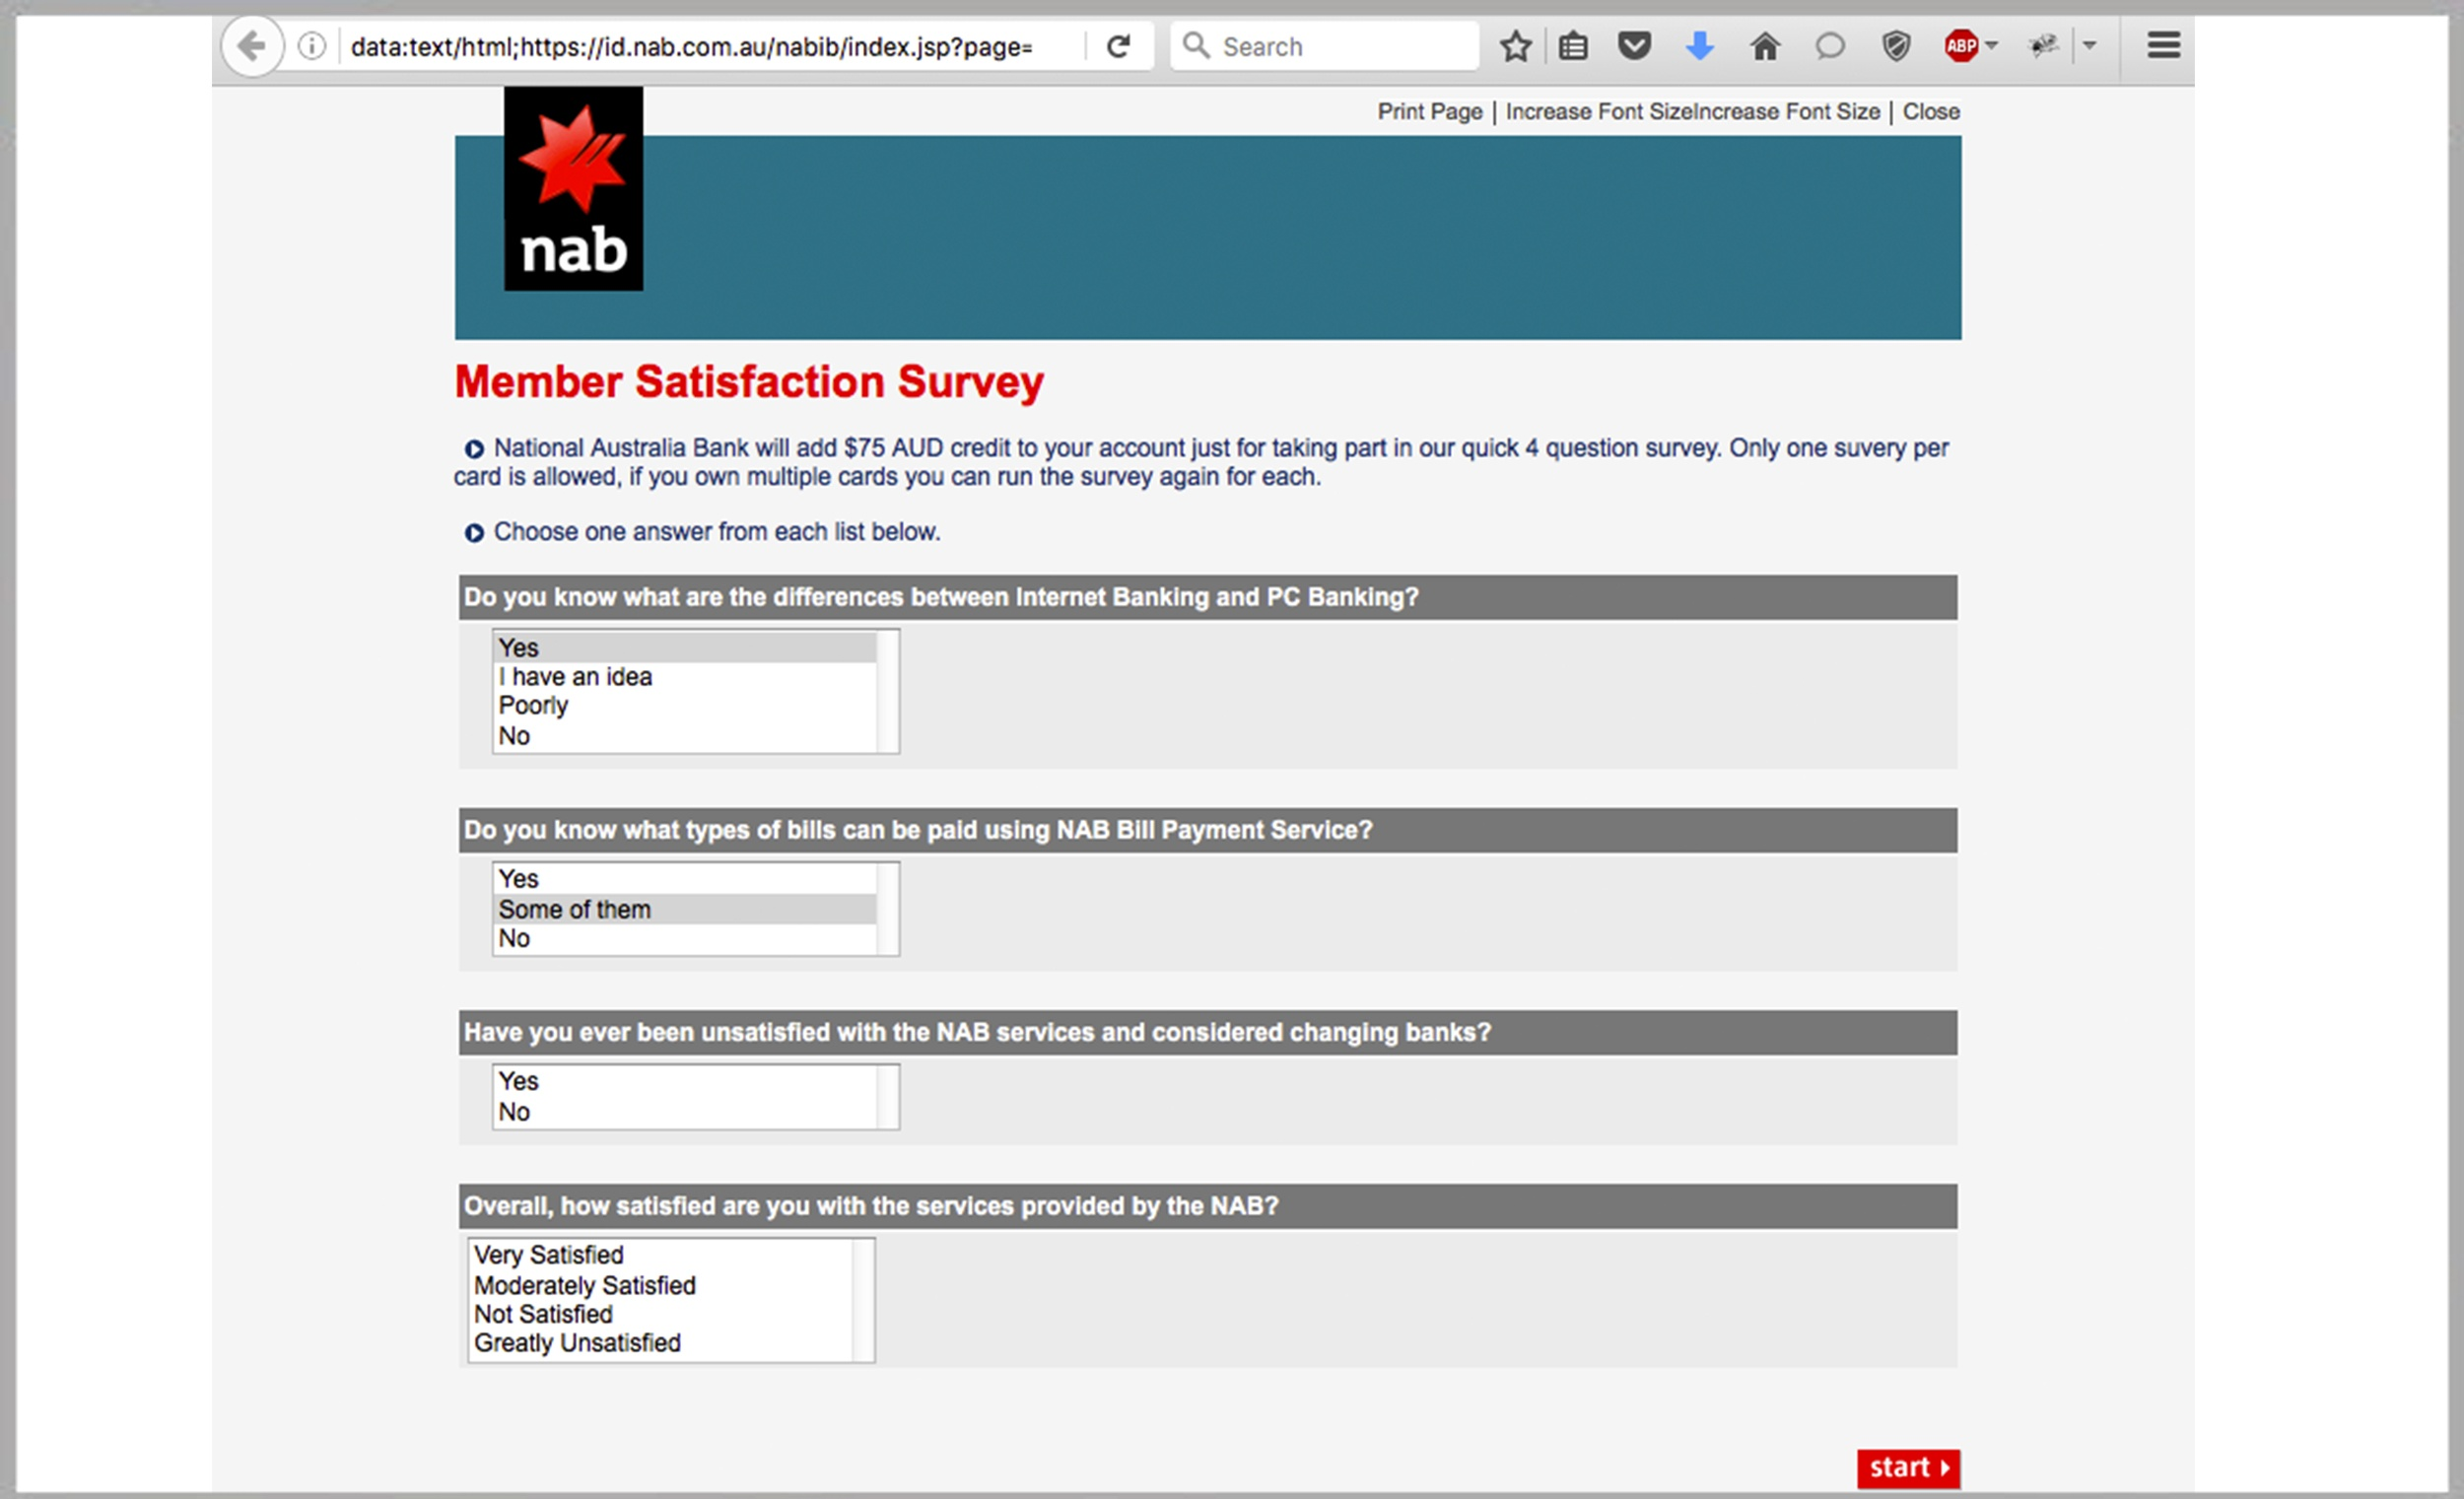 MailGuard_Fake_NAB_Email_Survey_Scam_Landin_Page_June_2016.jpg